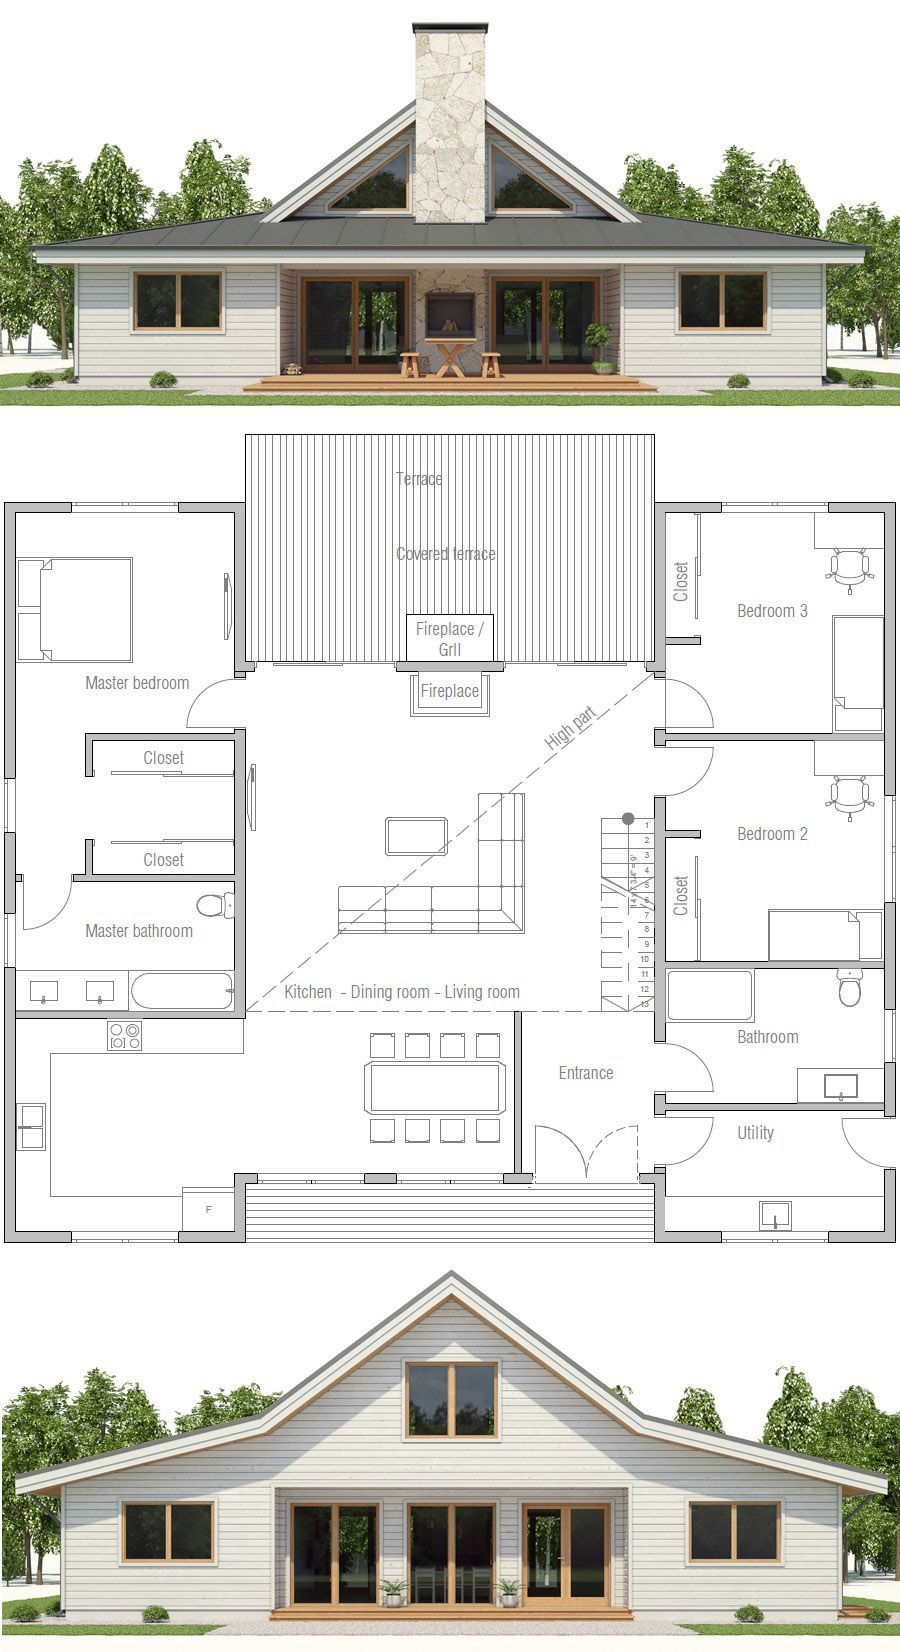 12 Ideas Container House Plan For Architecture Architecture Homedecor 41ideaformyhouse In 2020 House Plans Farmhouse New House Plans Container House Plans